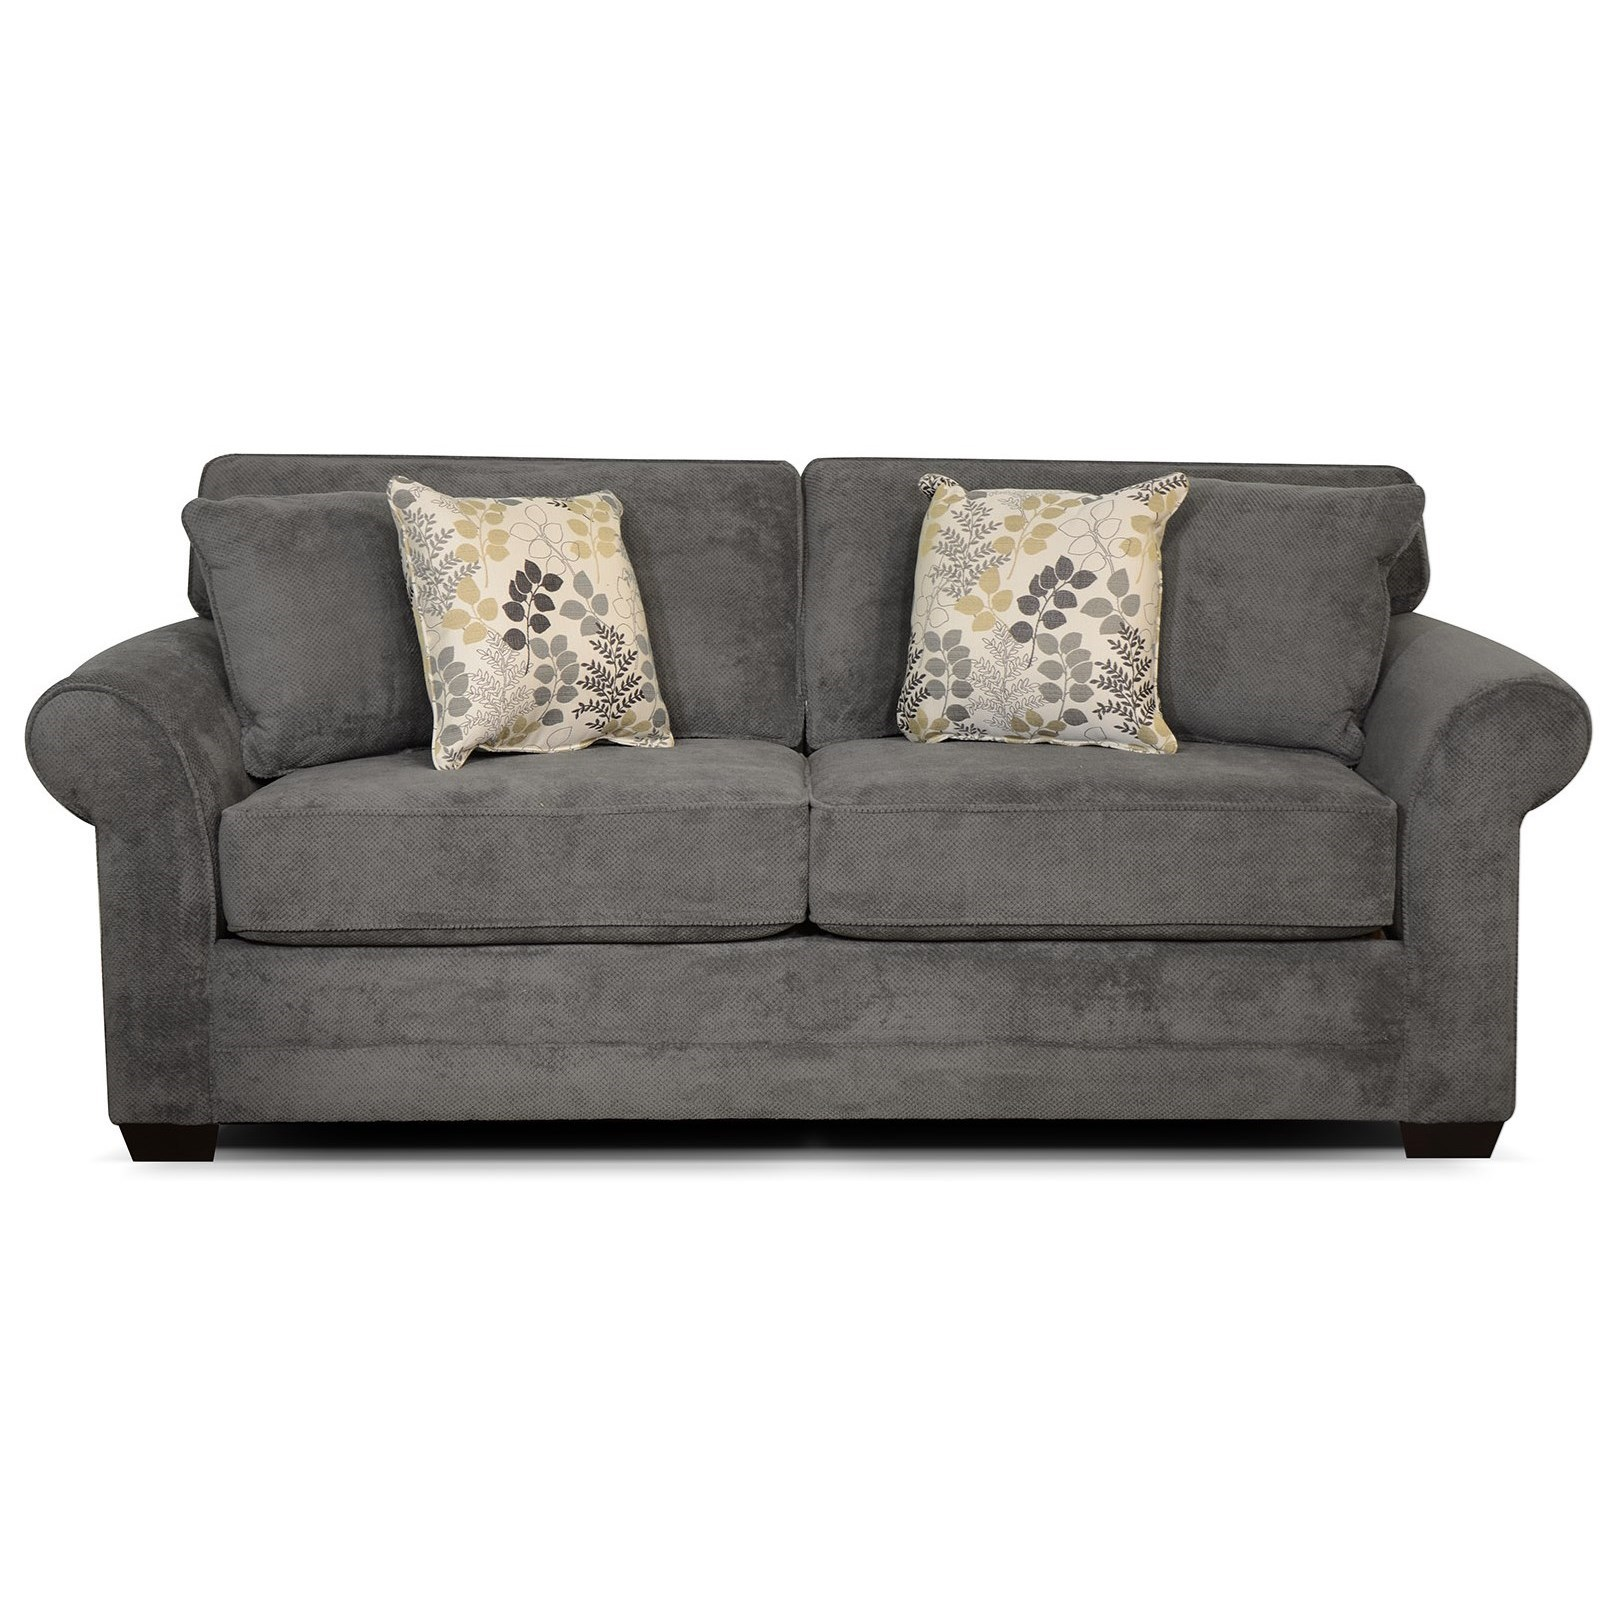 Brantley Upholstered Sofa by England at A1 Furniture & Mattress